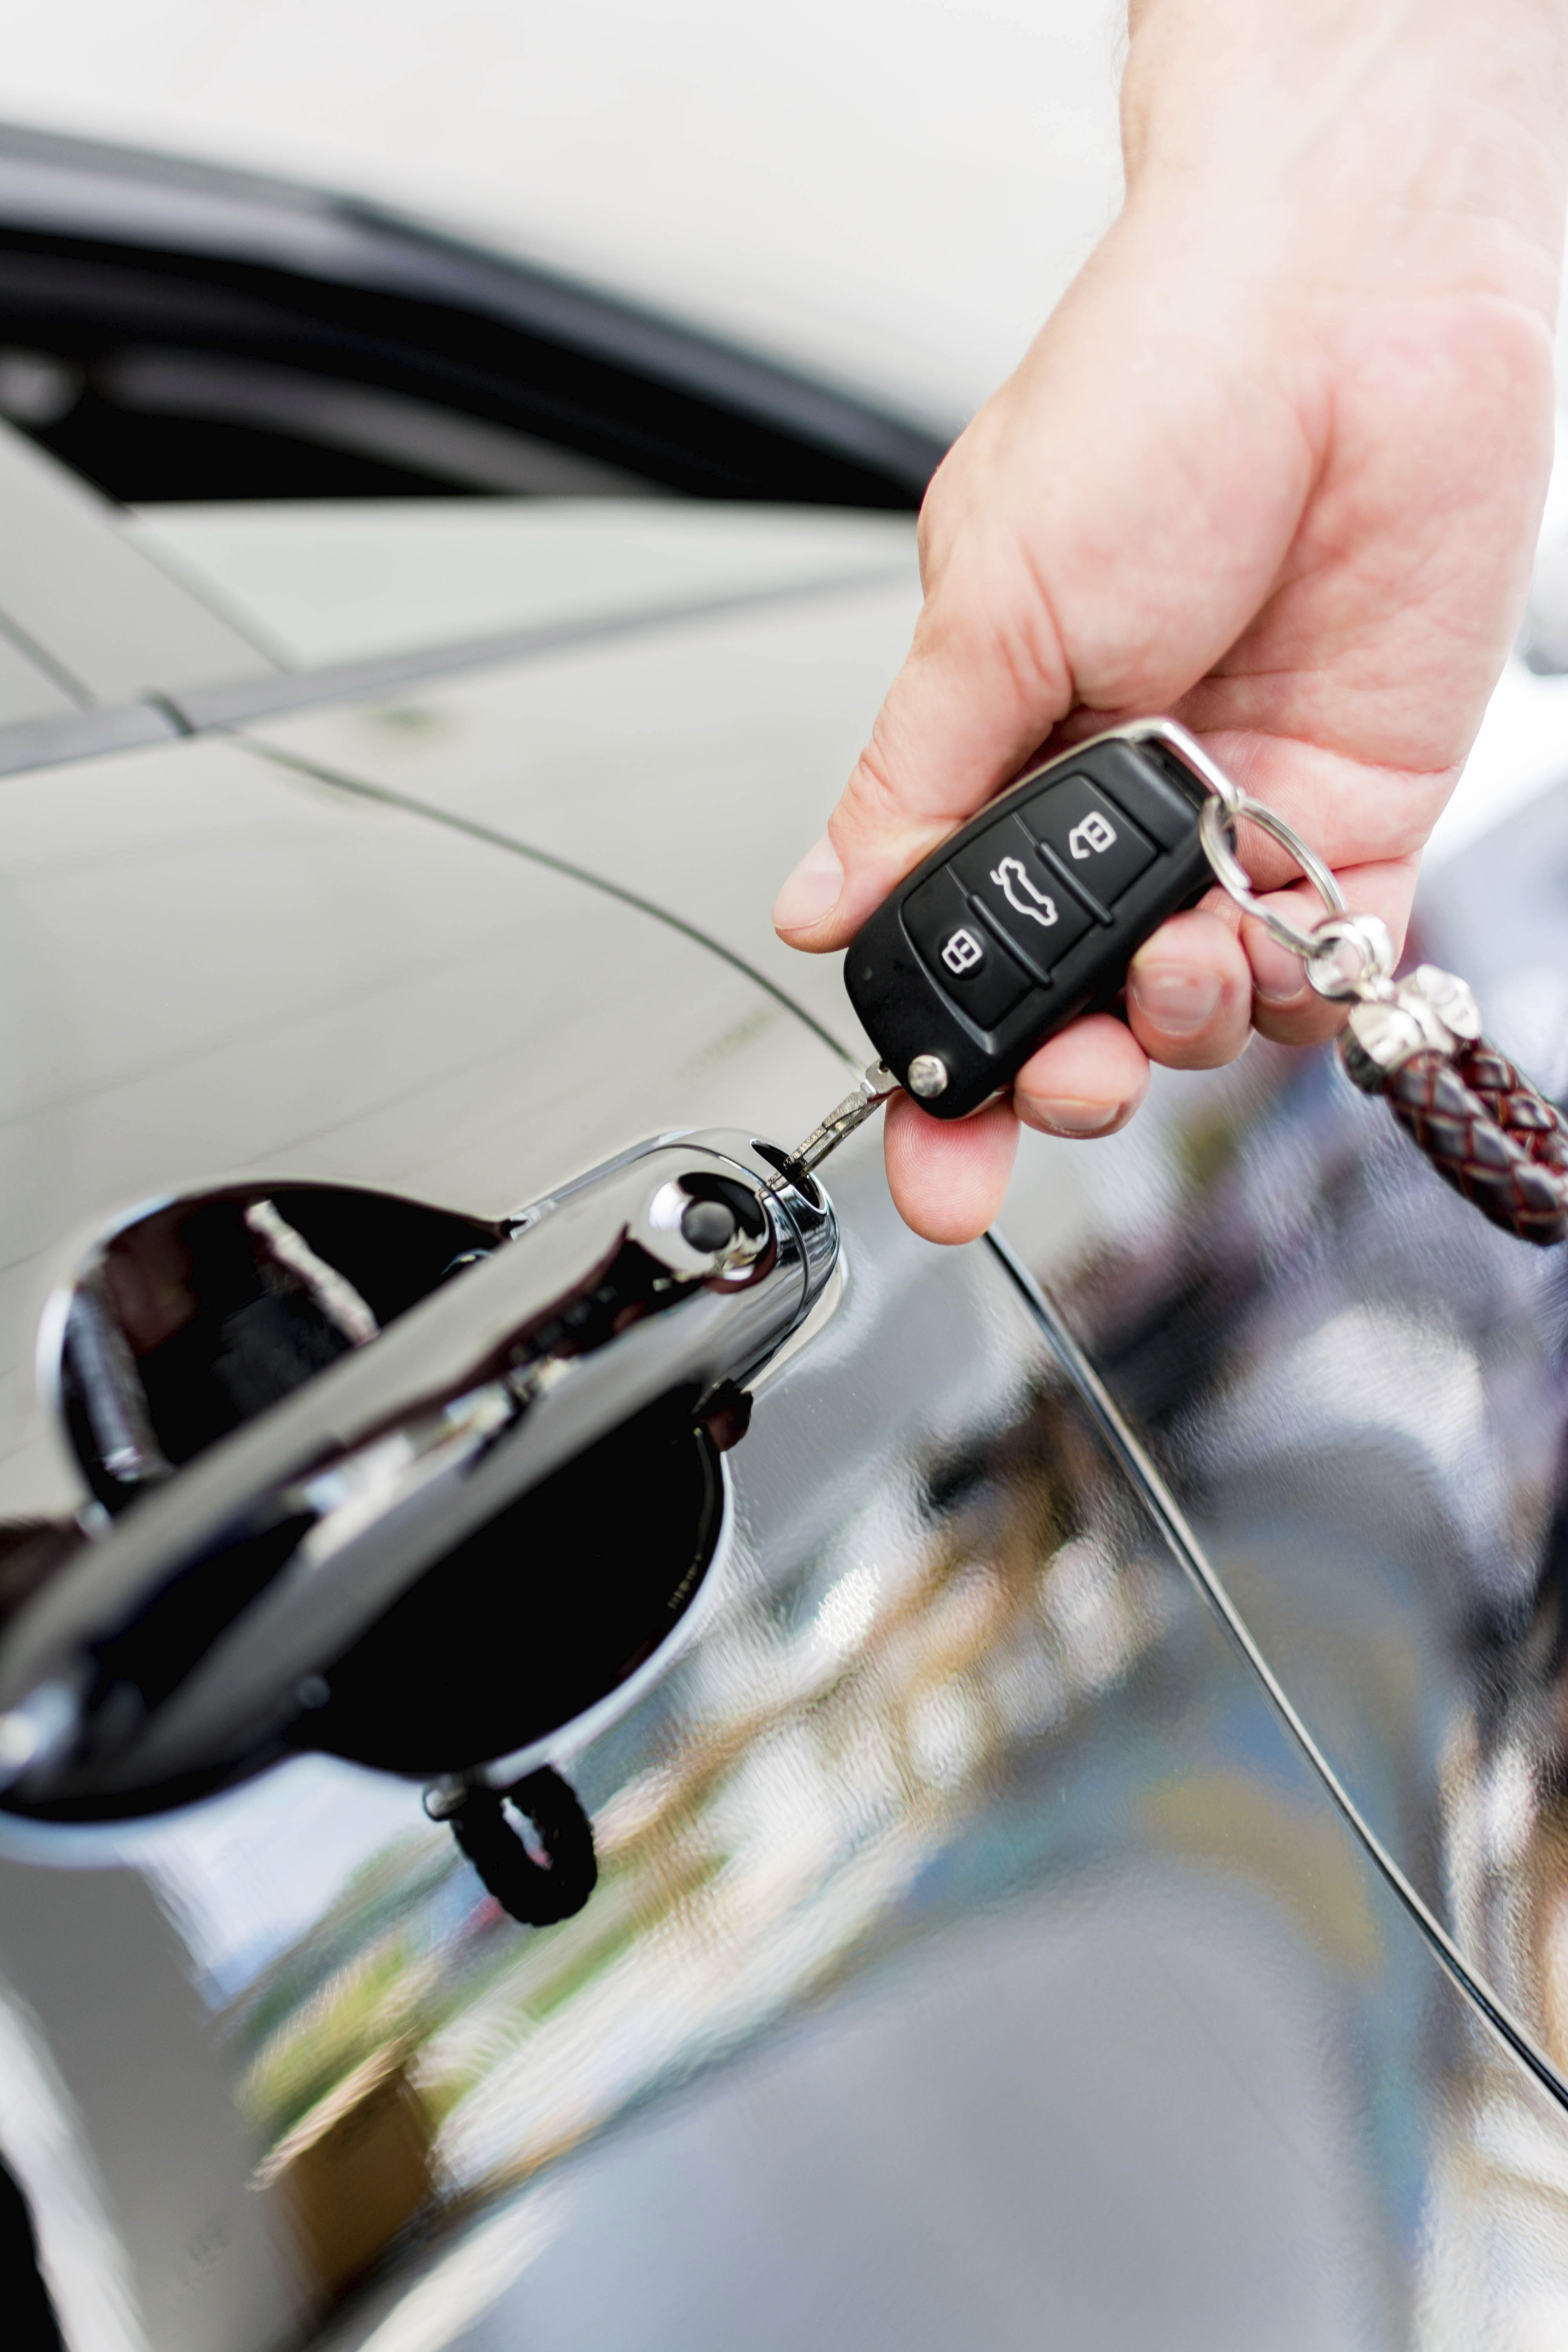 Car Care: The key to unlocking your car - NZ Herald